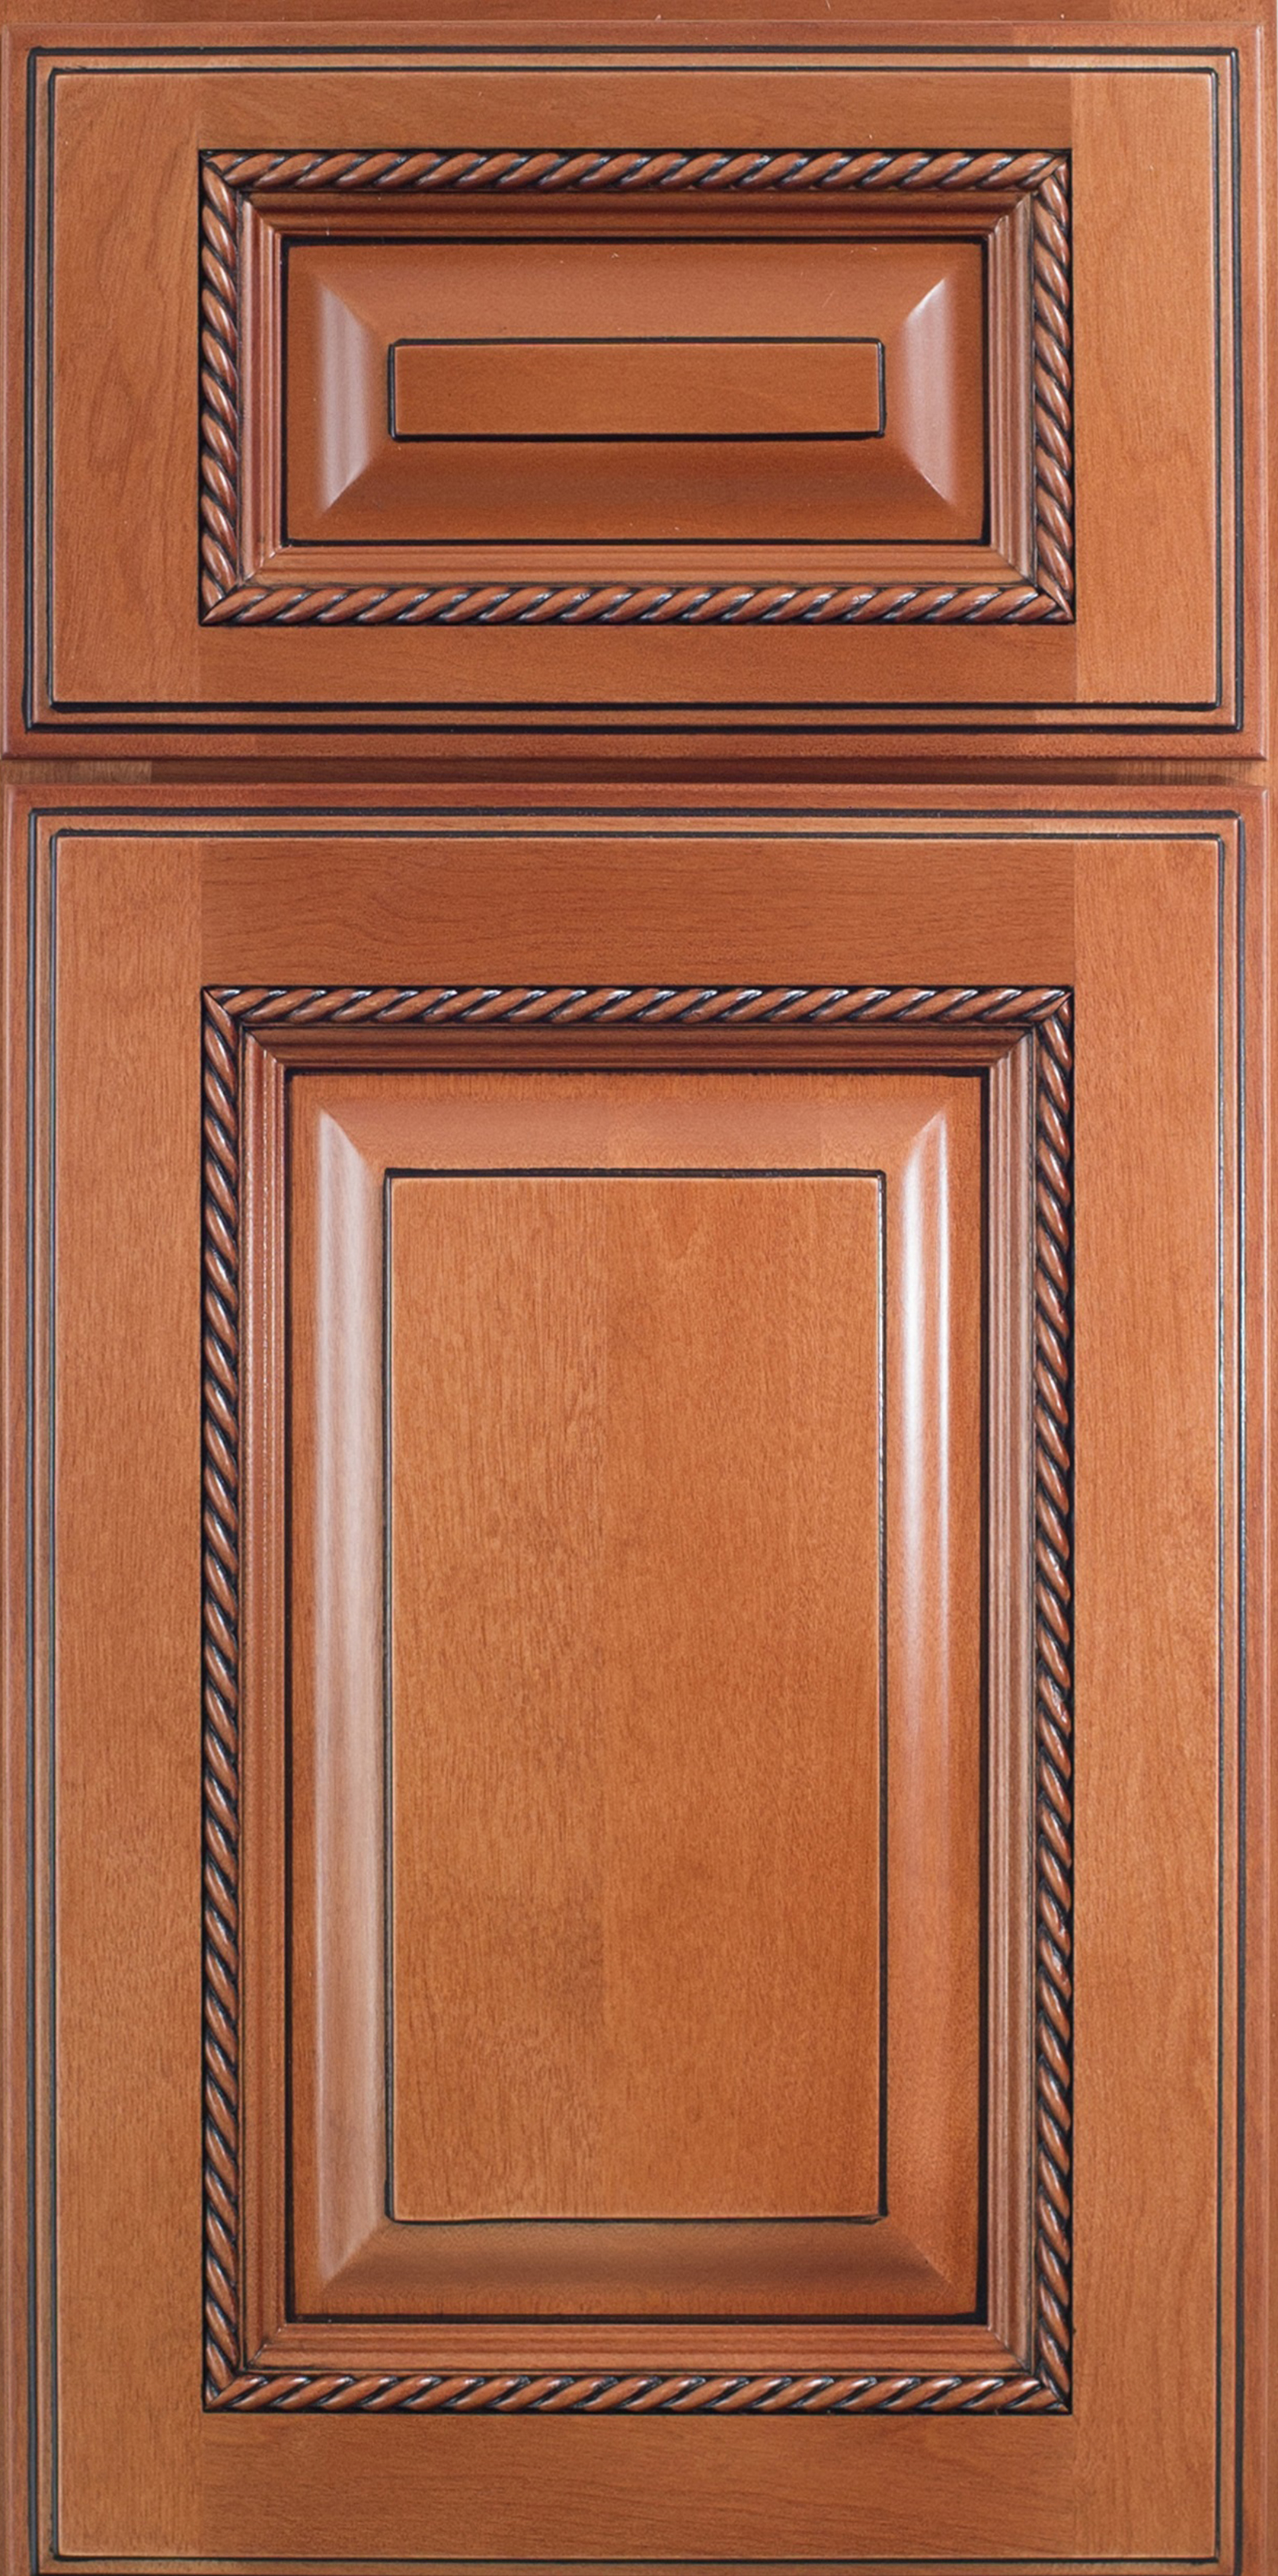 Sienna Rope - Forevermark Cabinetry